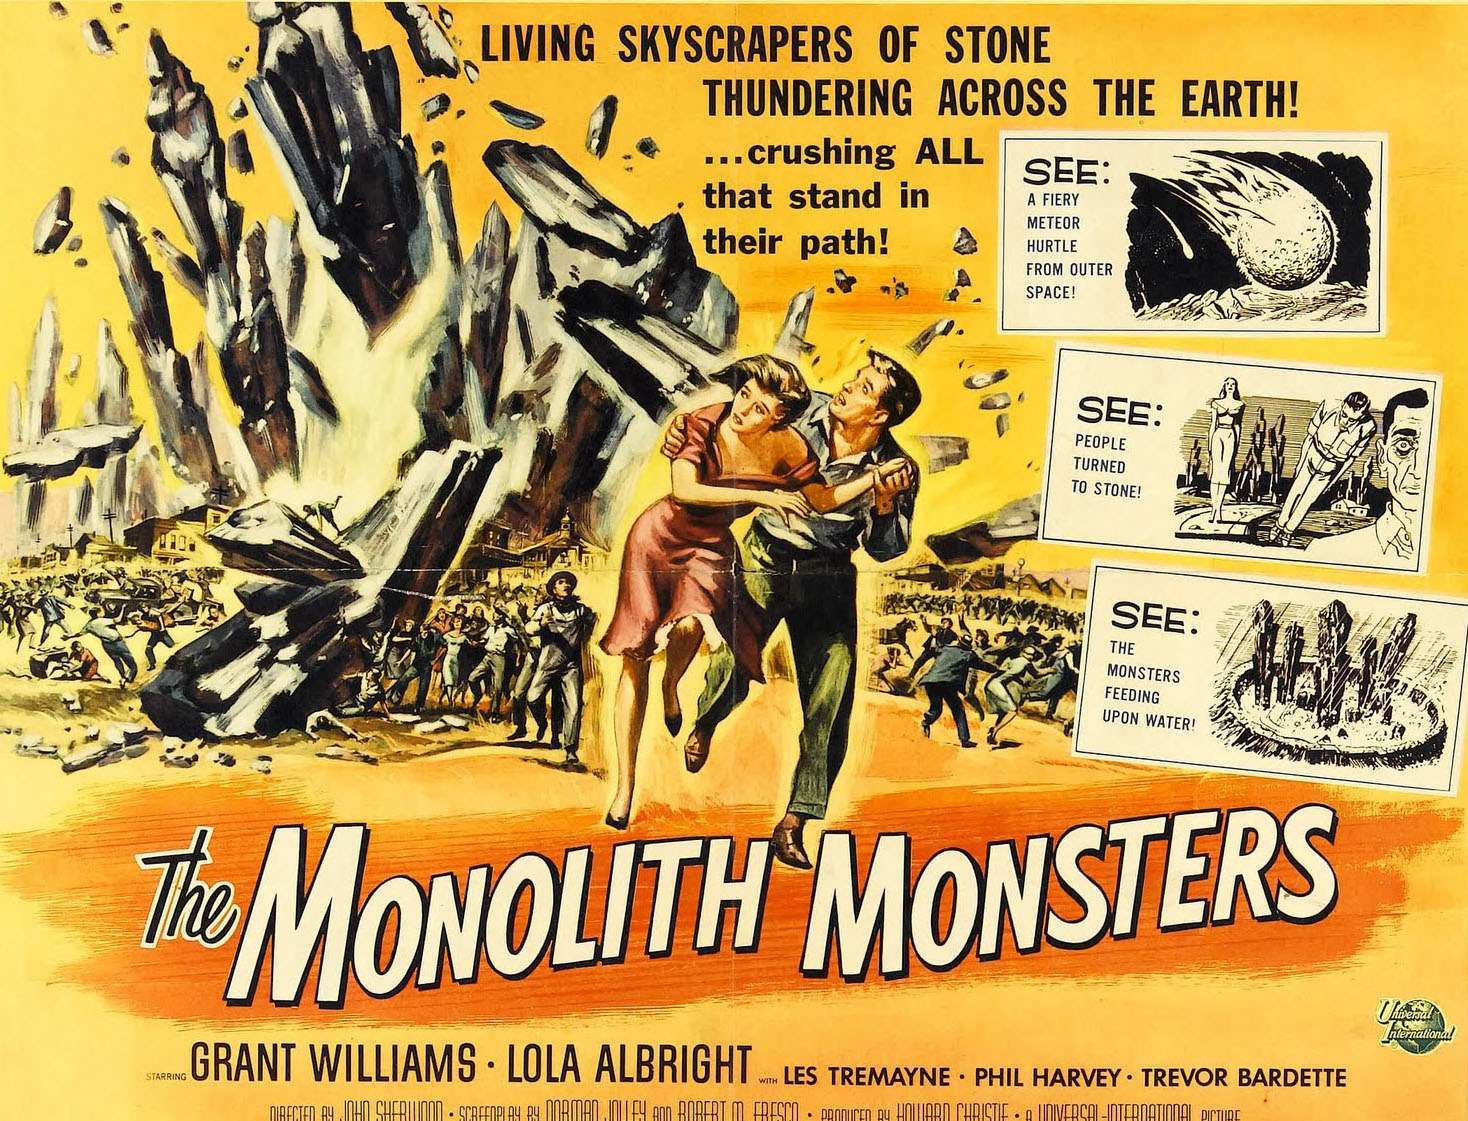 strange movie monsters (3)